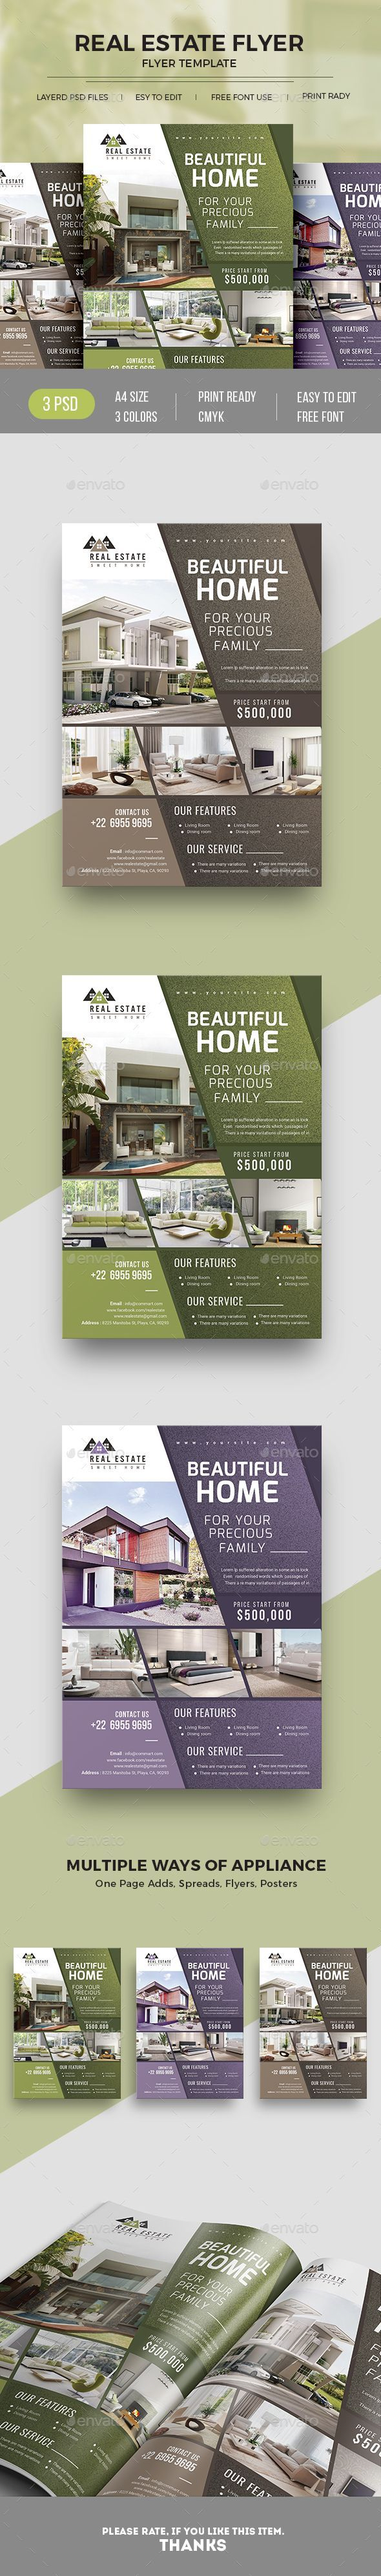 real estate flyer template psd easy to edit and customize 3